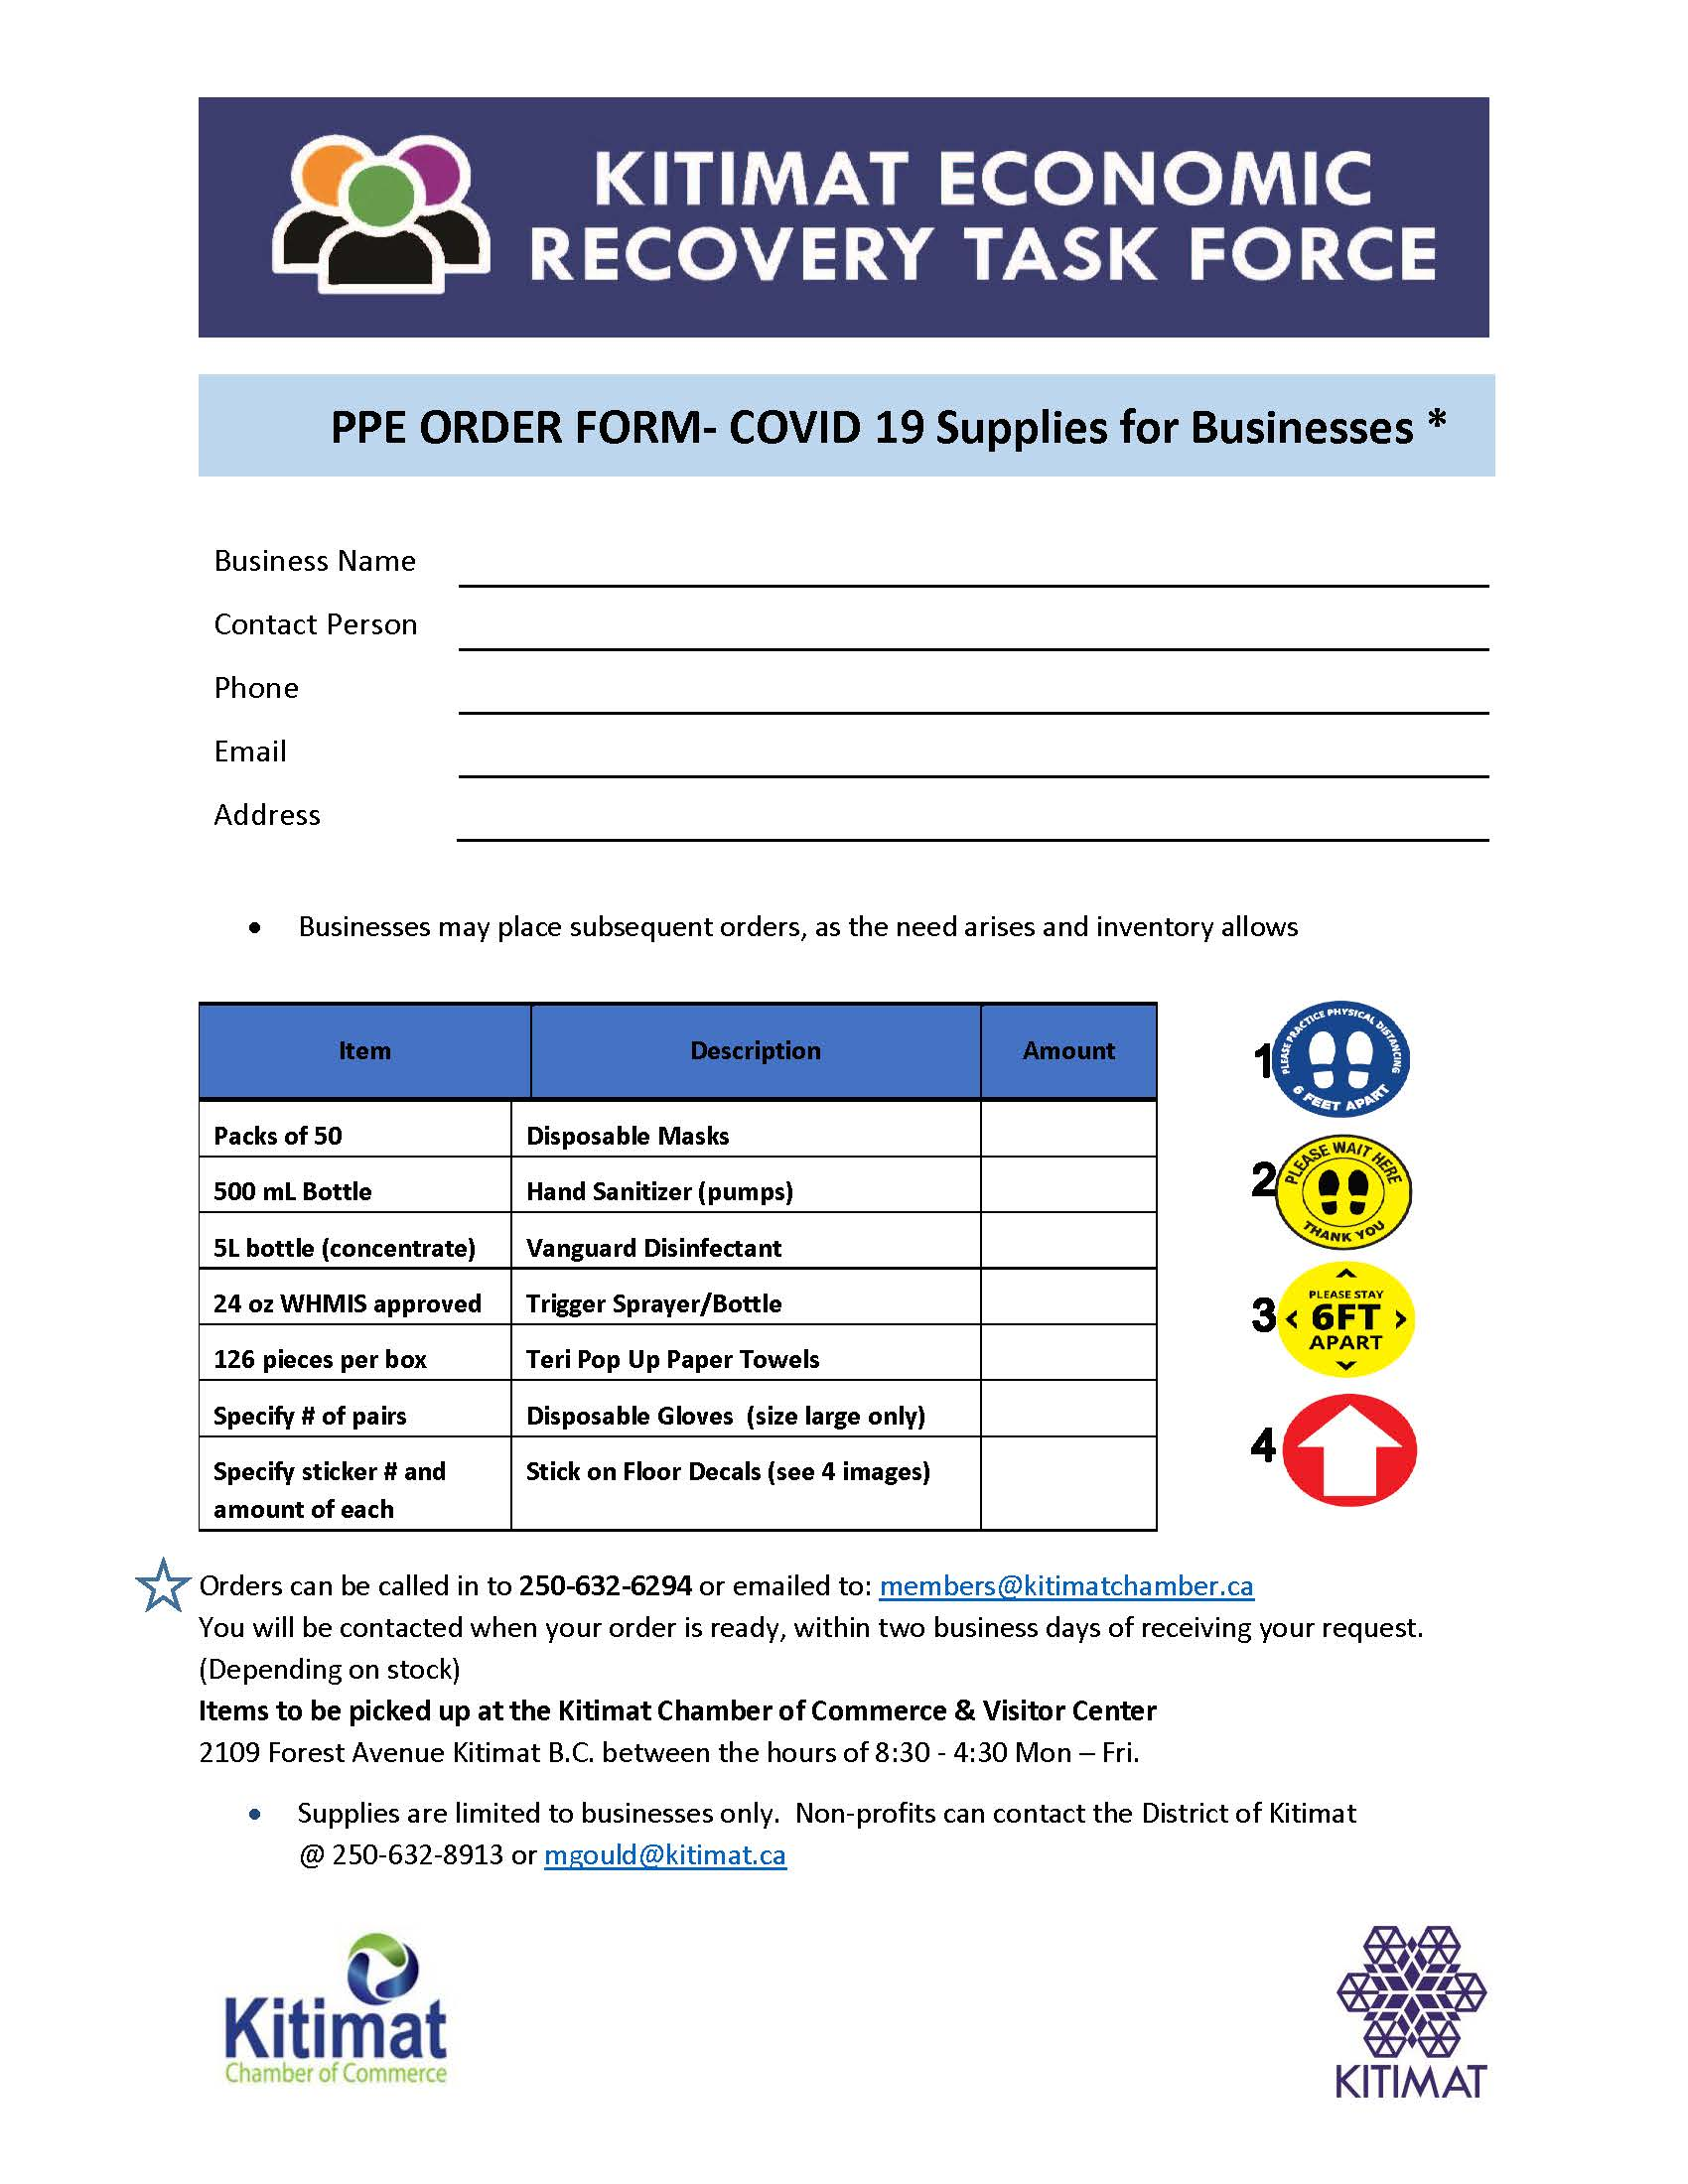 PPE order form for businesses